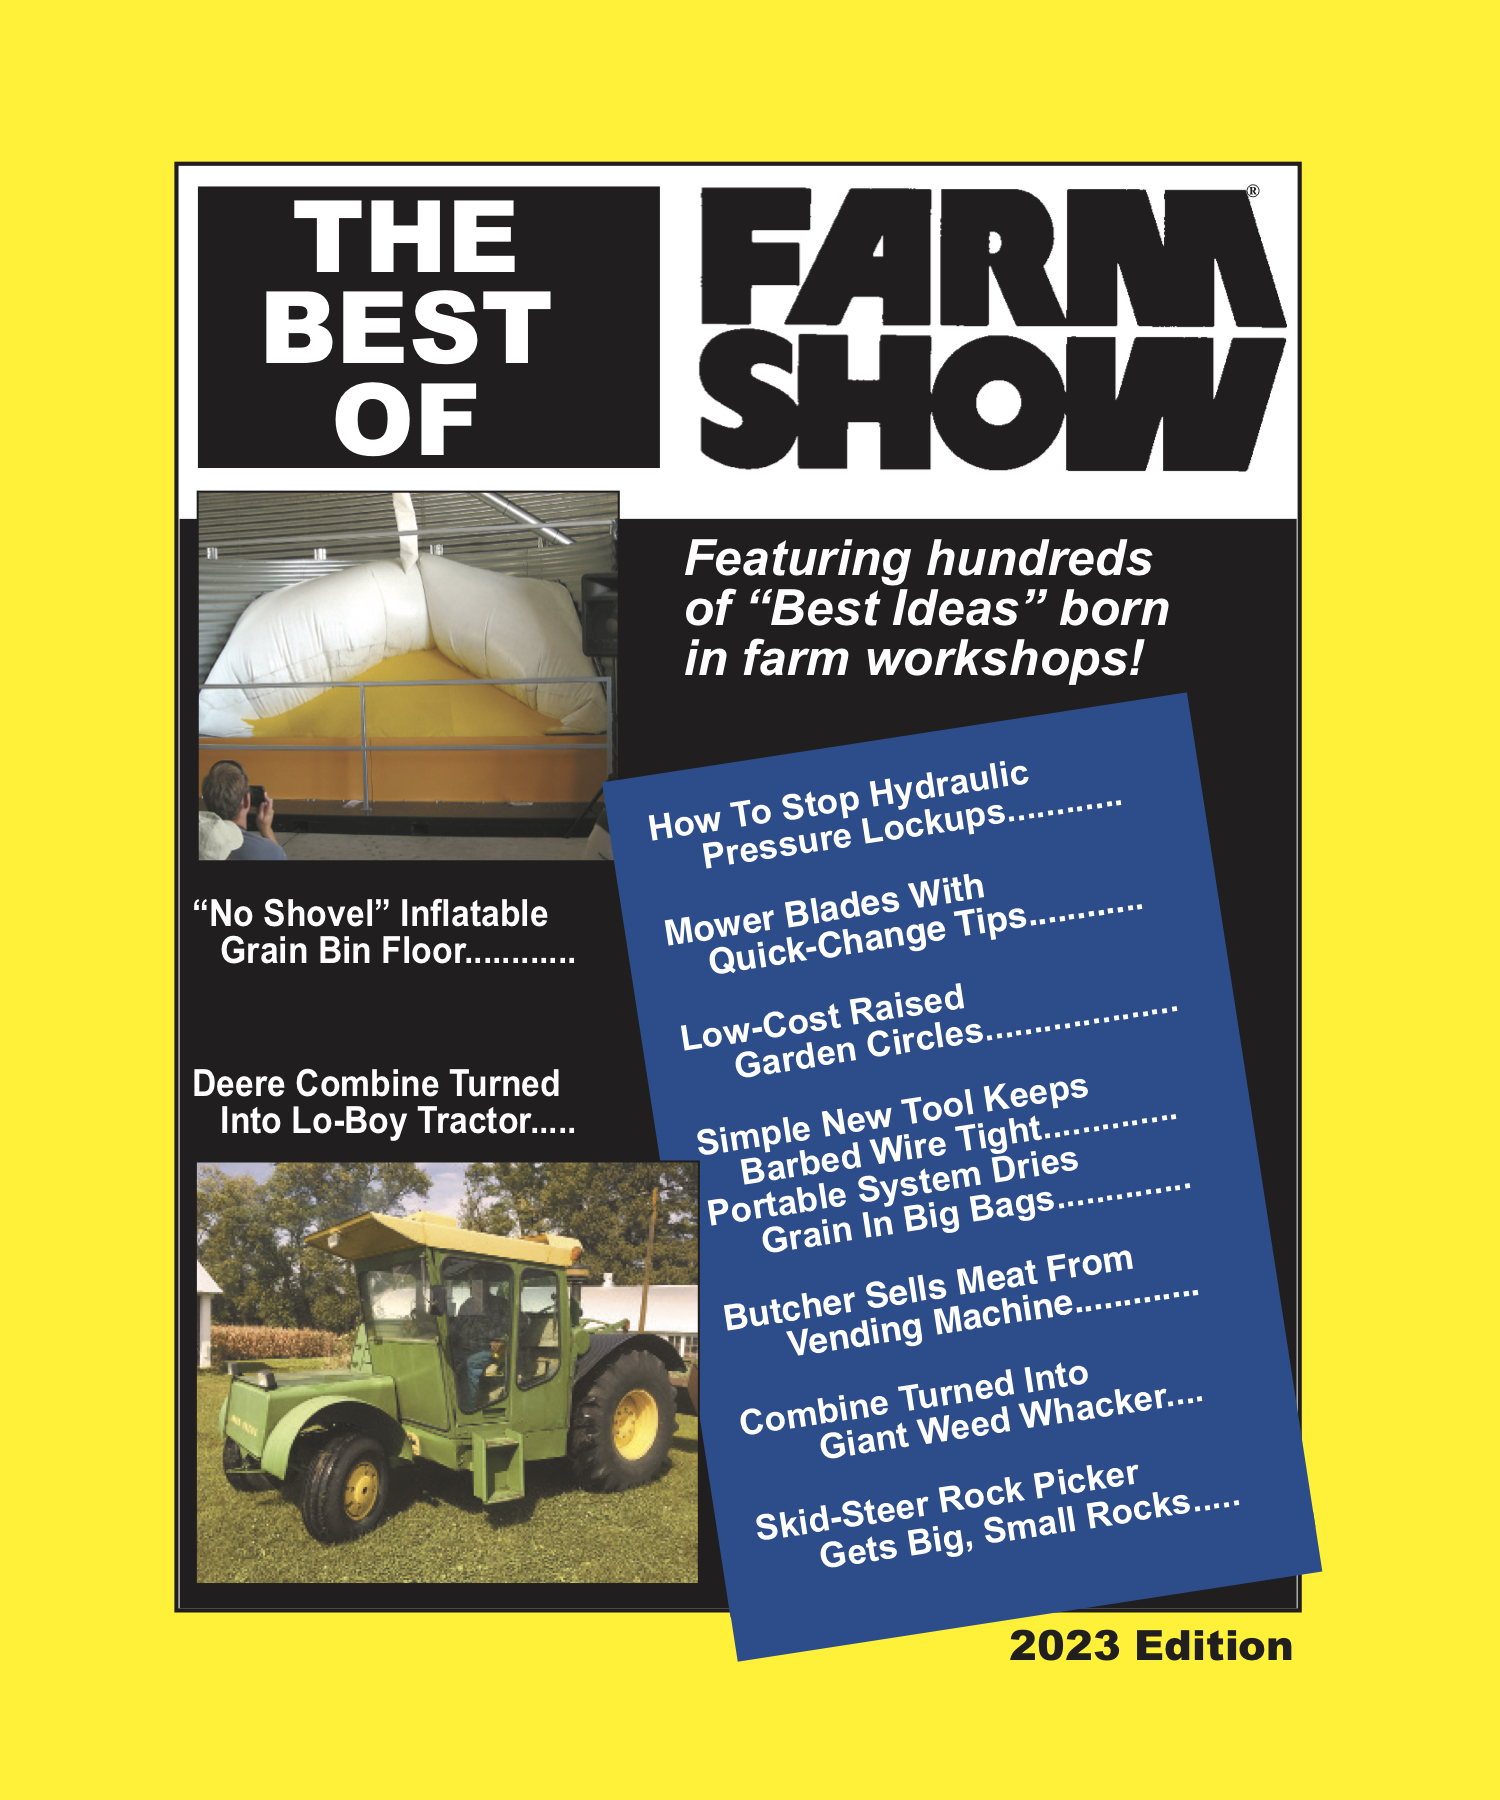 FARM SHOW Magazine Subscription Renewals Receive 2 FREE Books!